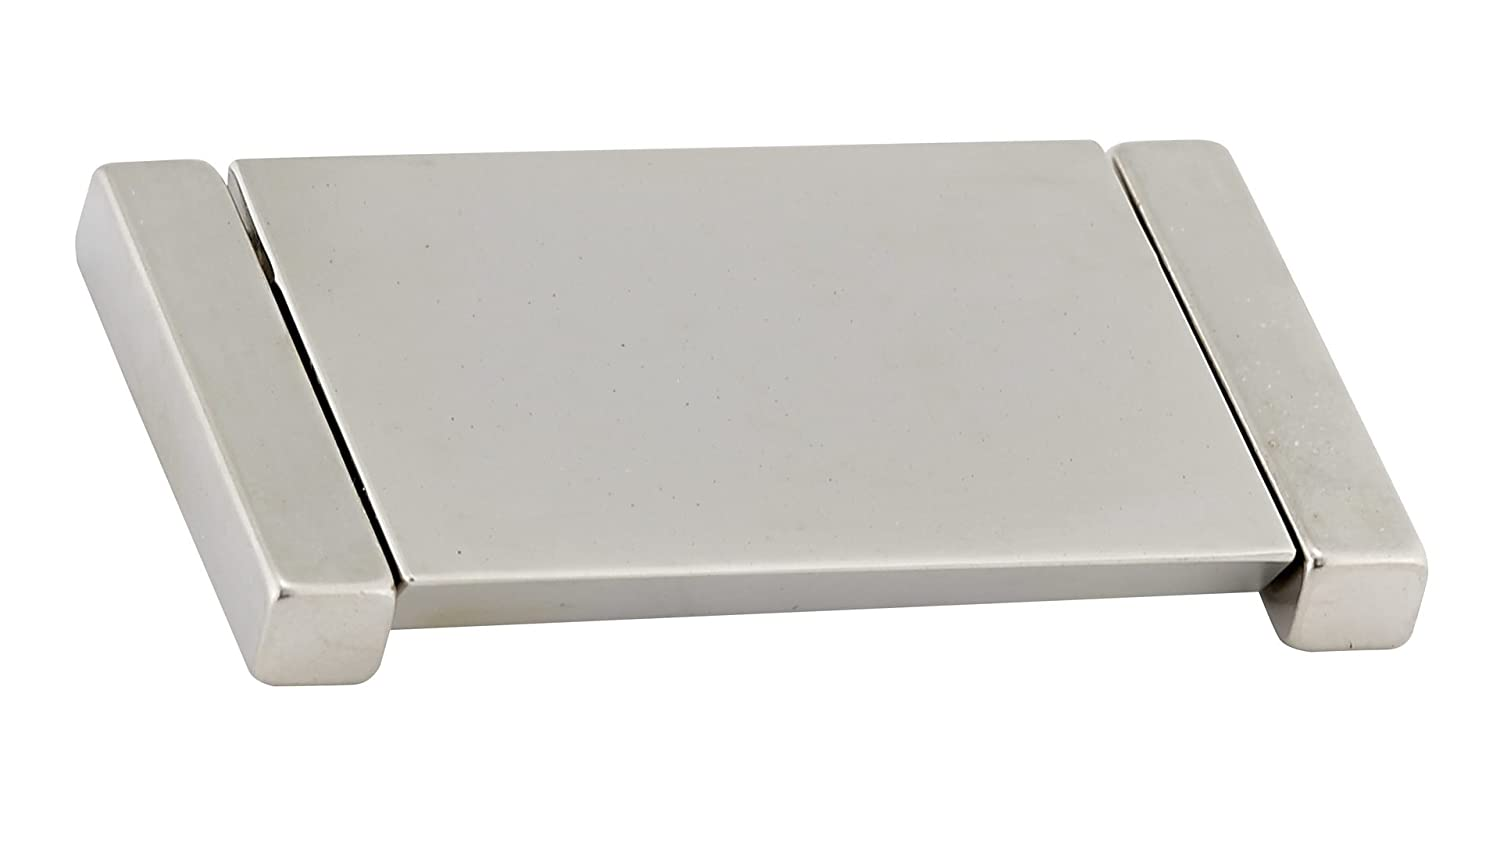 Richelieu Hardware Contemporary Recessed Metal Pull 64 Mm Bp2376064195 2376 2 17 32 In Brushed Nickel Finish Tools Home Improvement Cabinet Hardware